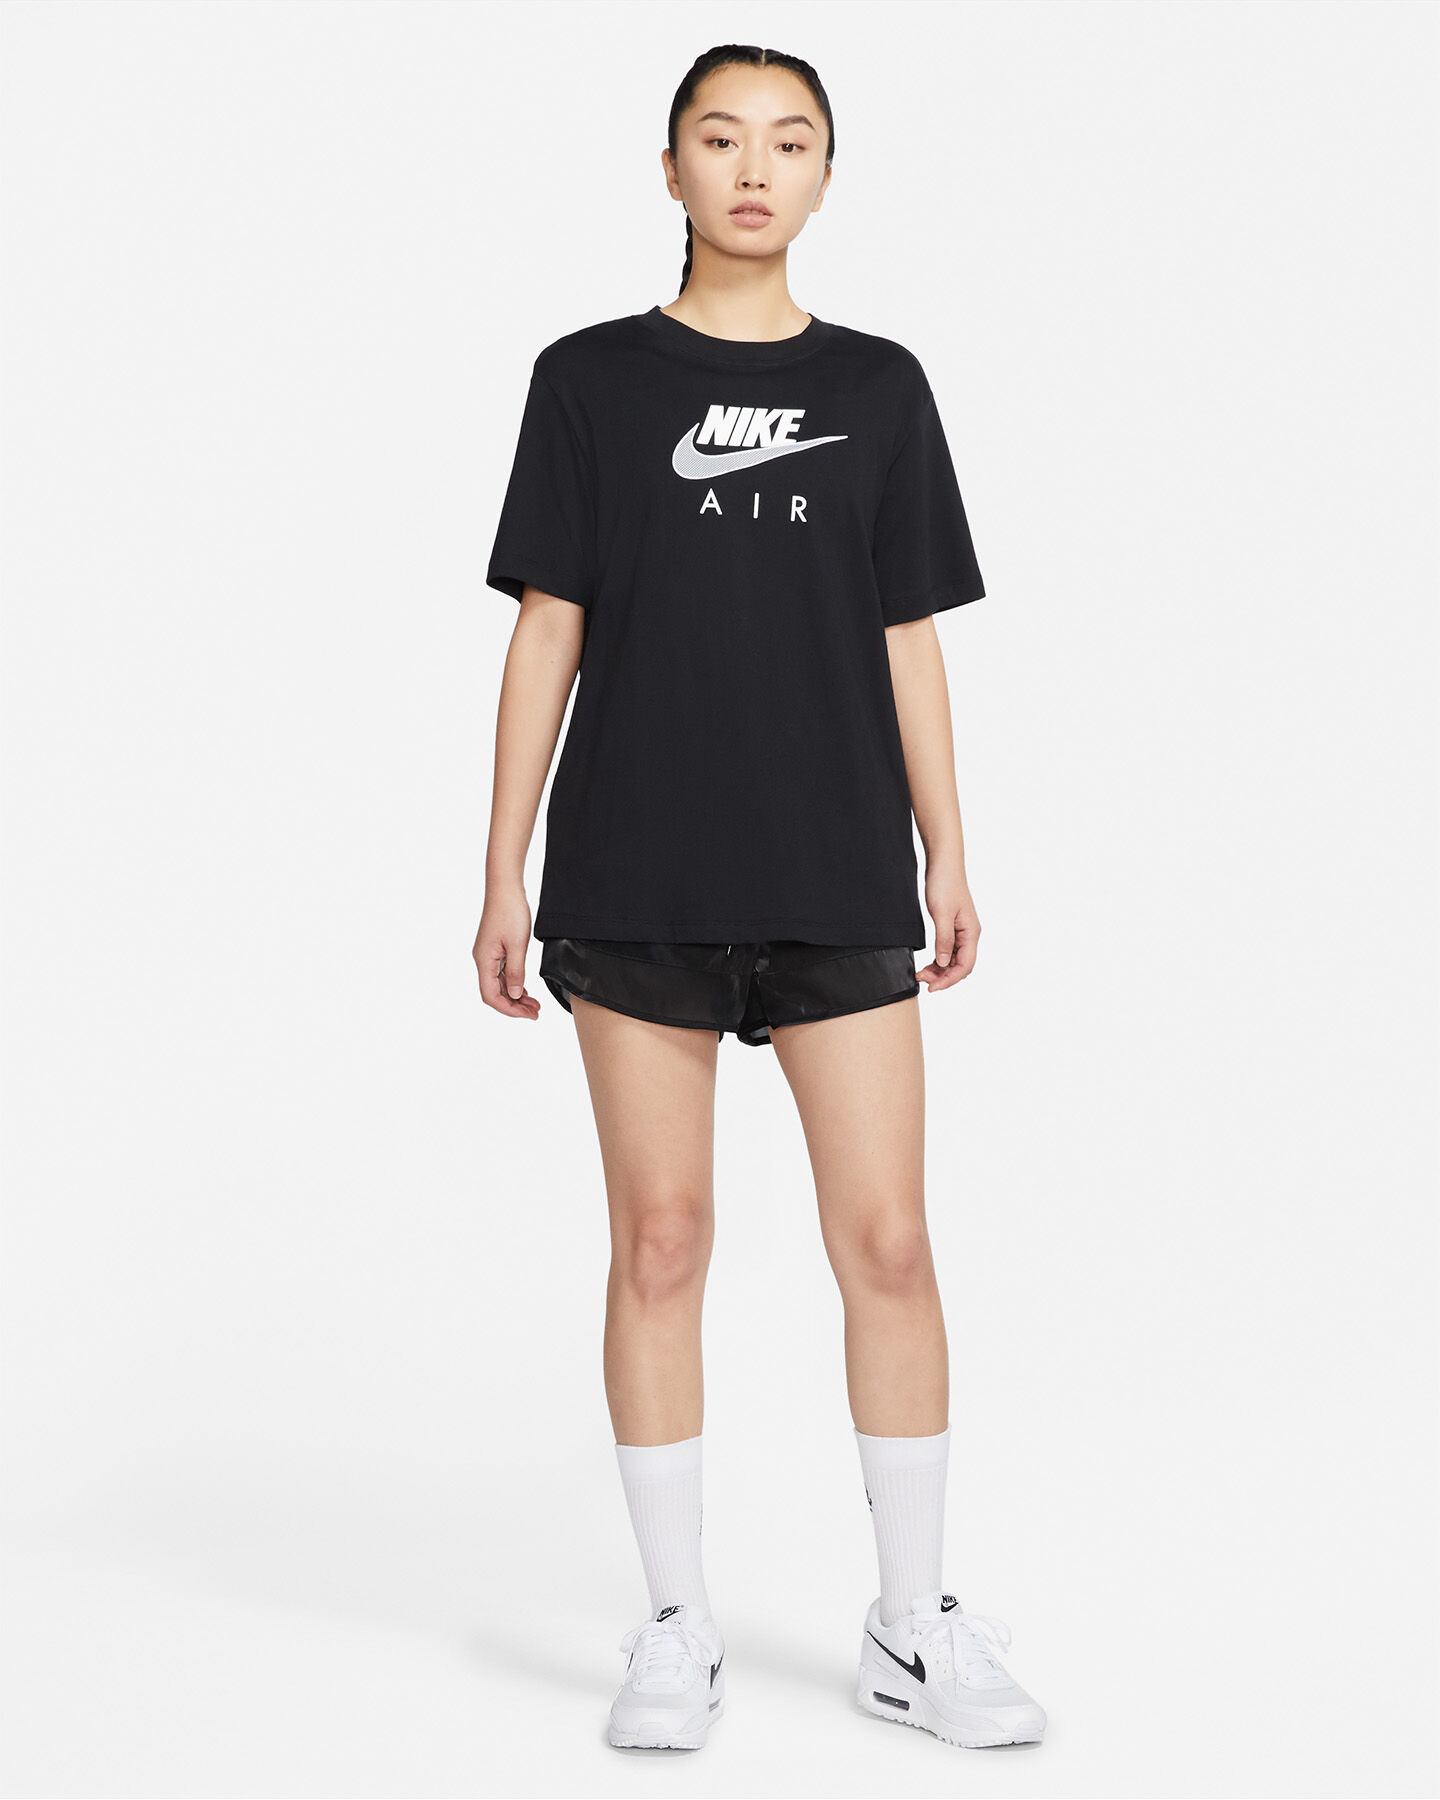 T-Shirt NIKE LONG AIR W S5267655 scatto 3